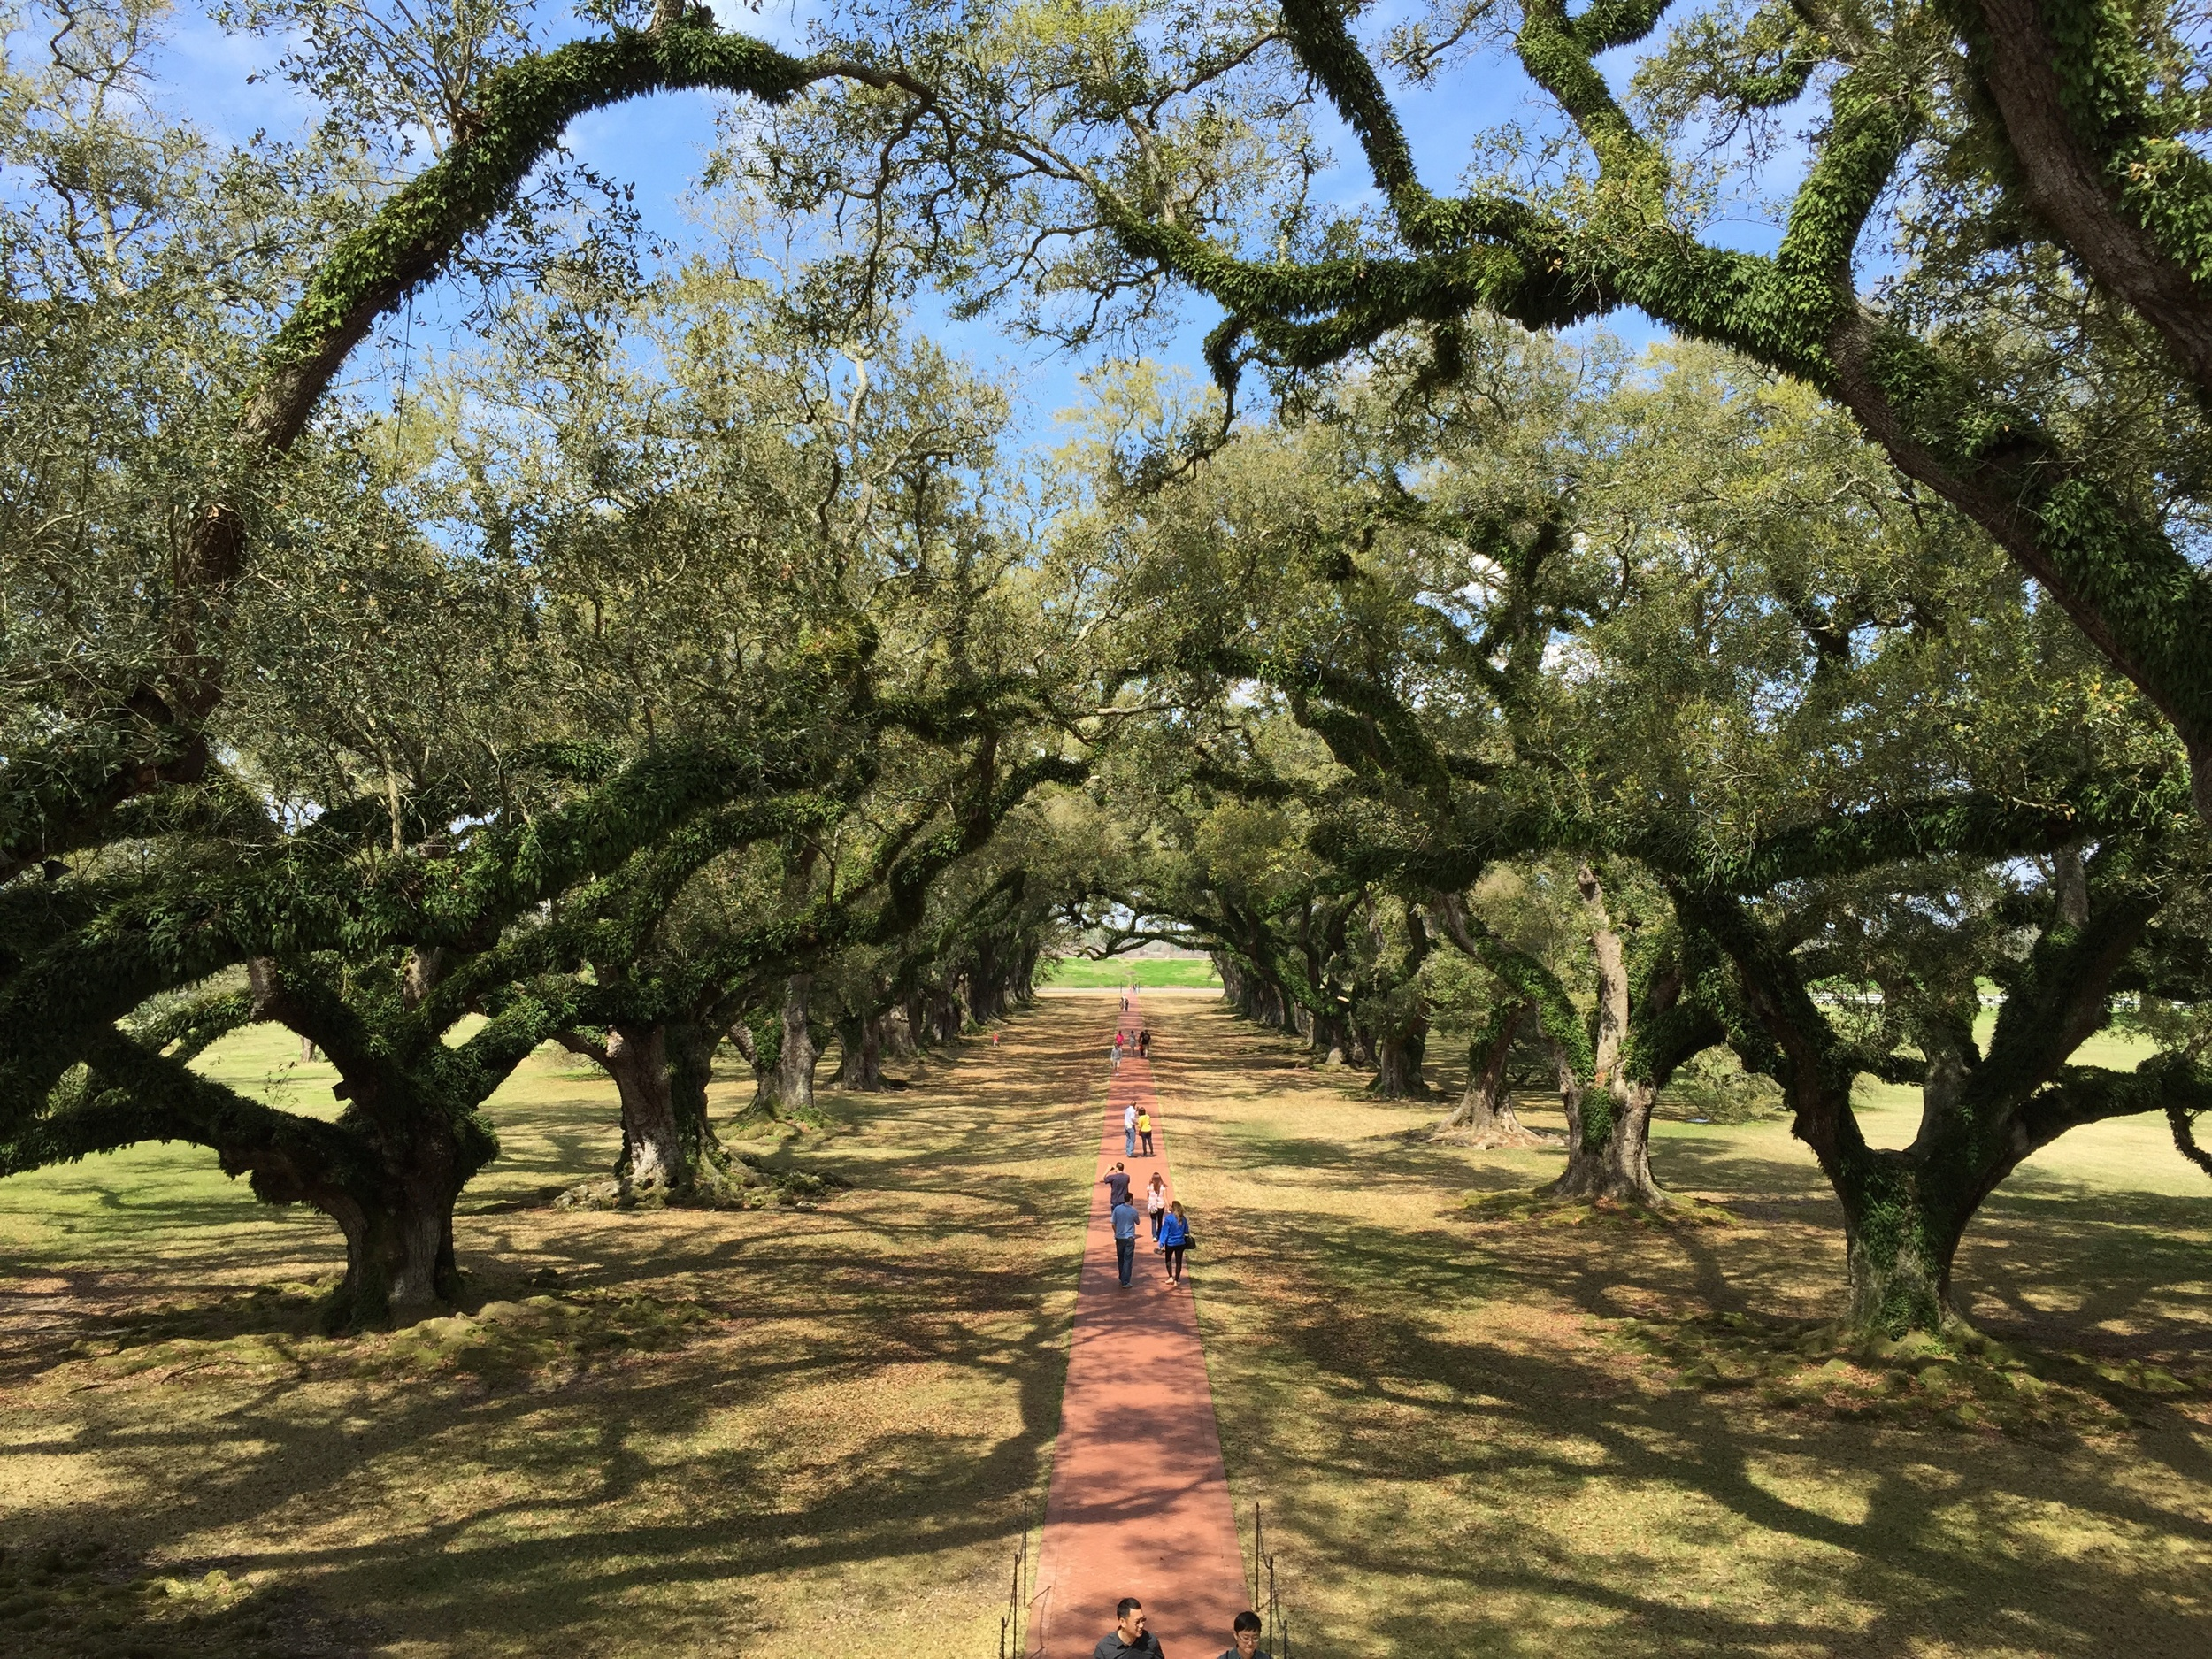 View down the alley of oaks